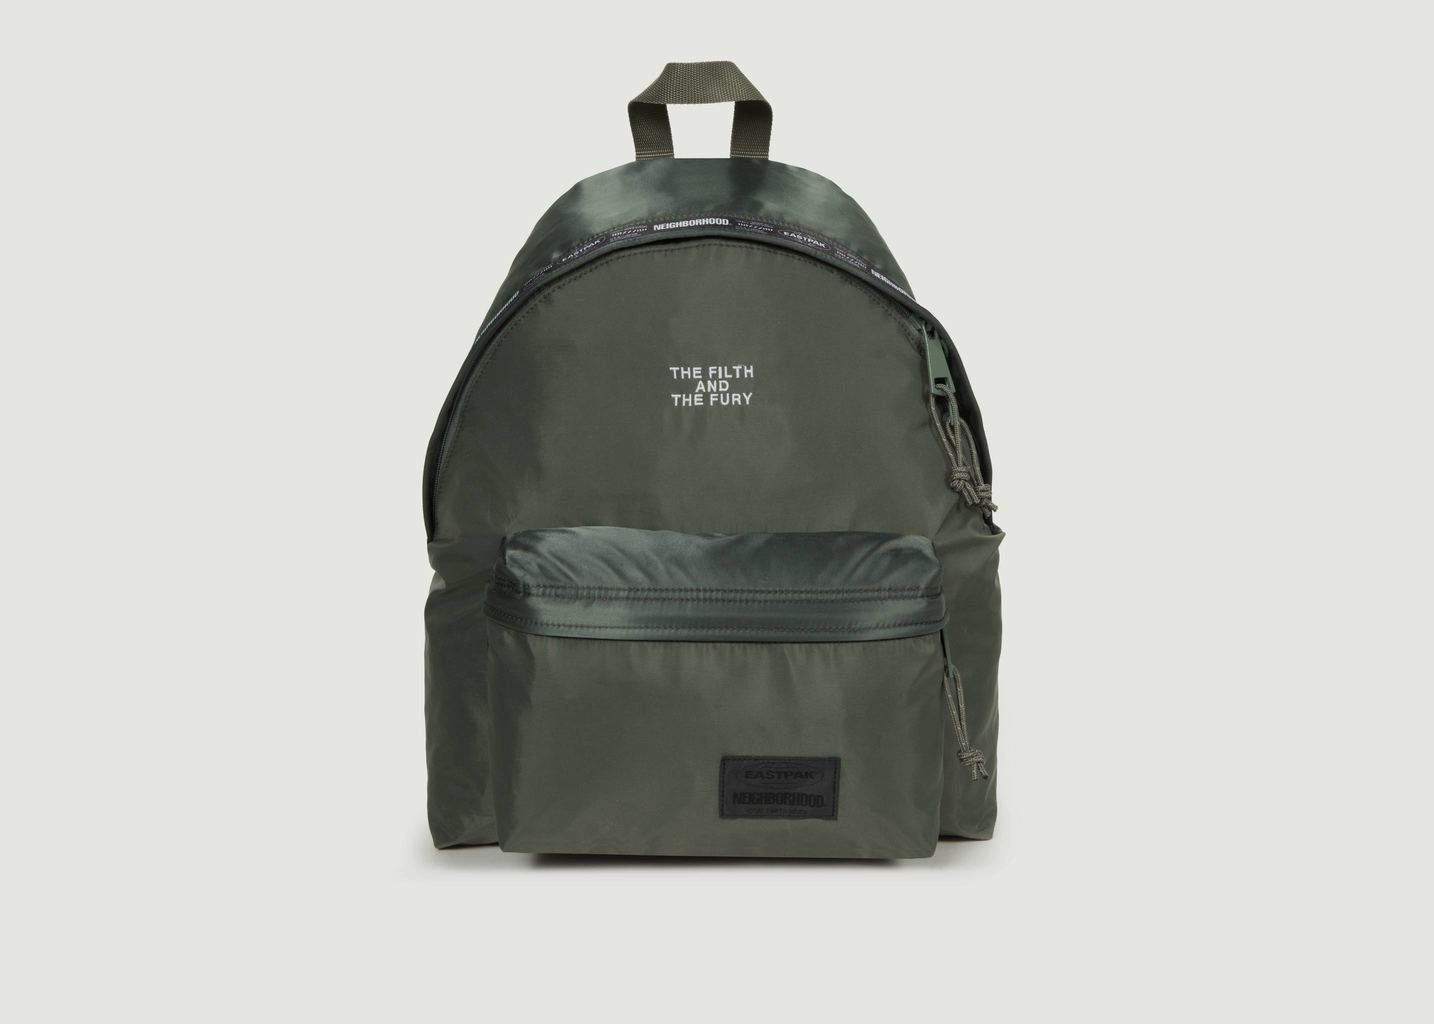 Sac A Dos Padded x Neigborhood - Eastpak